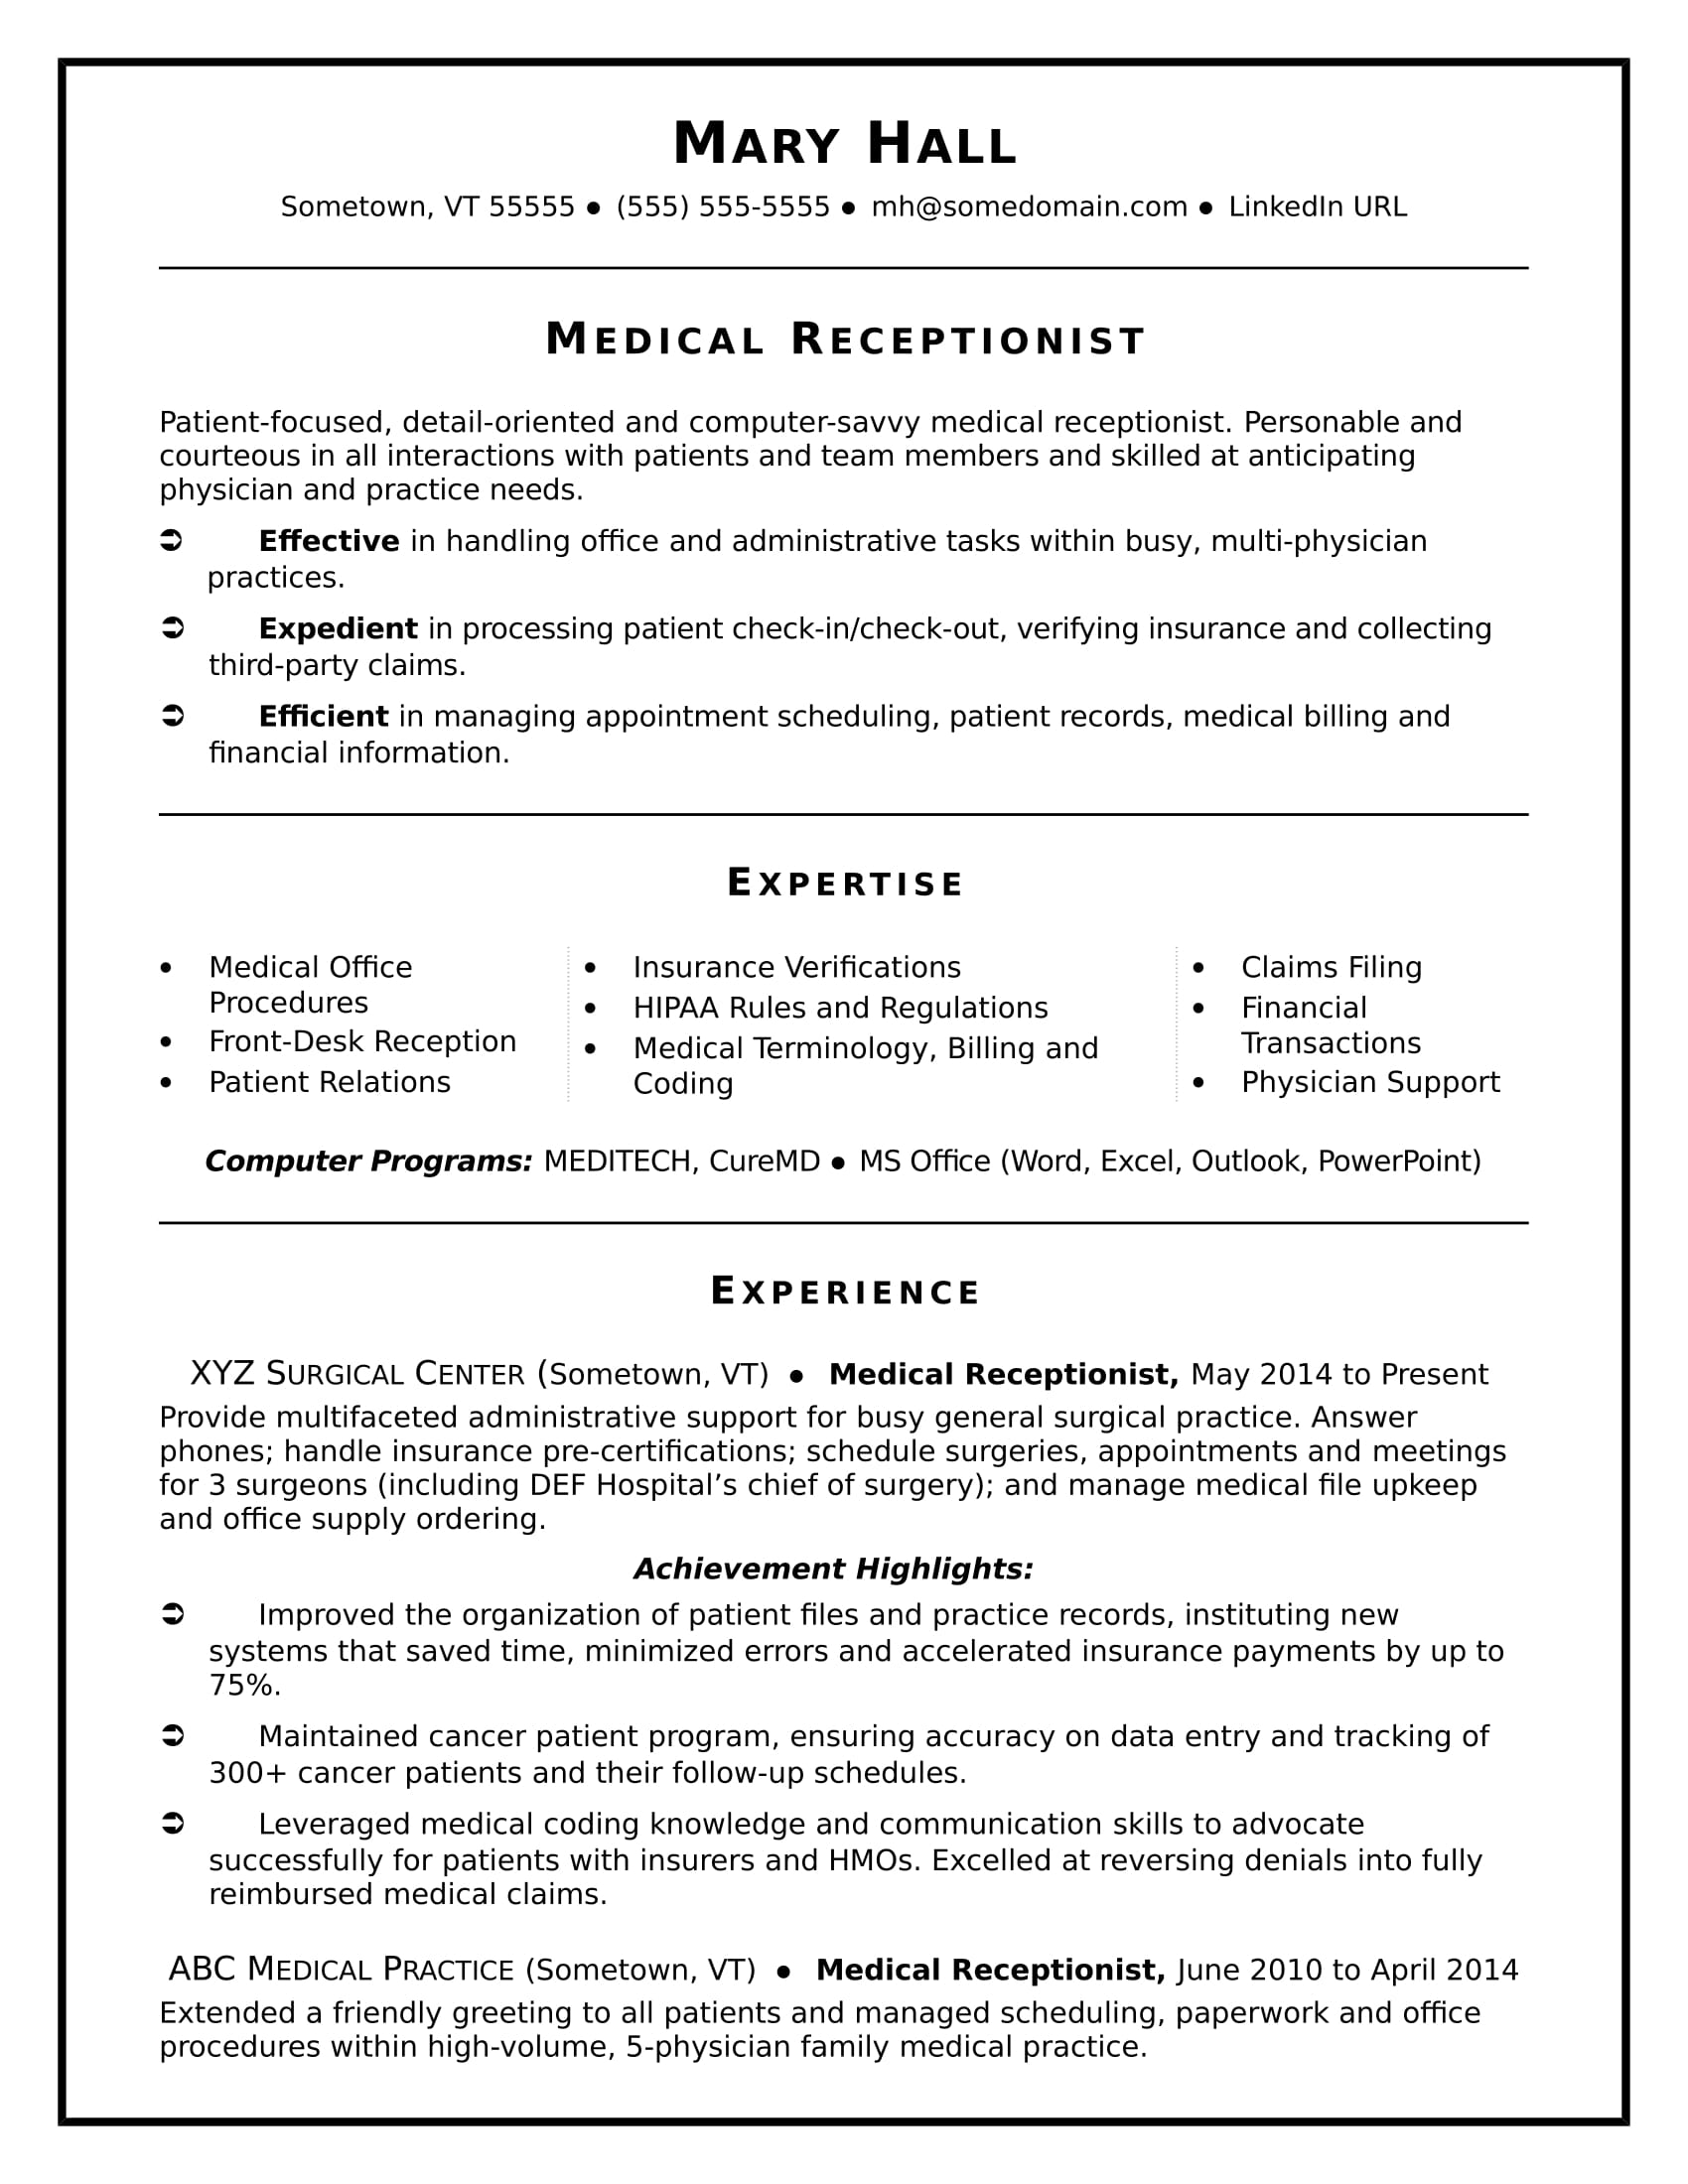 medical receptionist resume sample monster office assistant skills self employed handyman Resume Medical Office Assistant Skills Resume